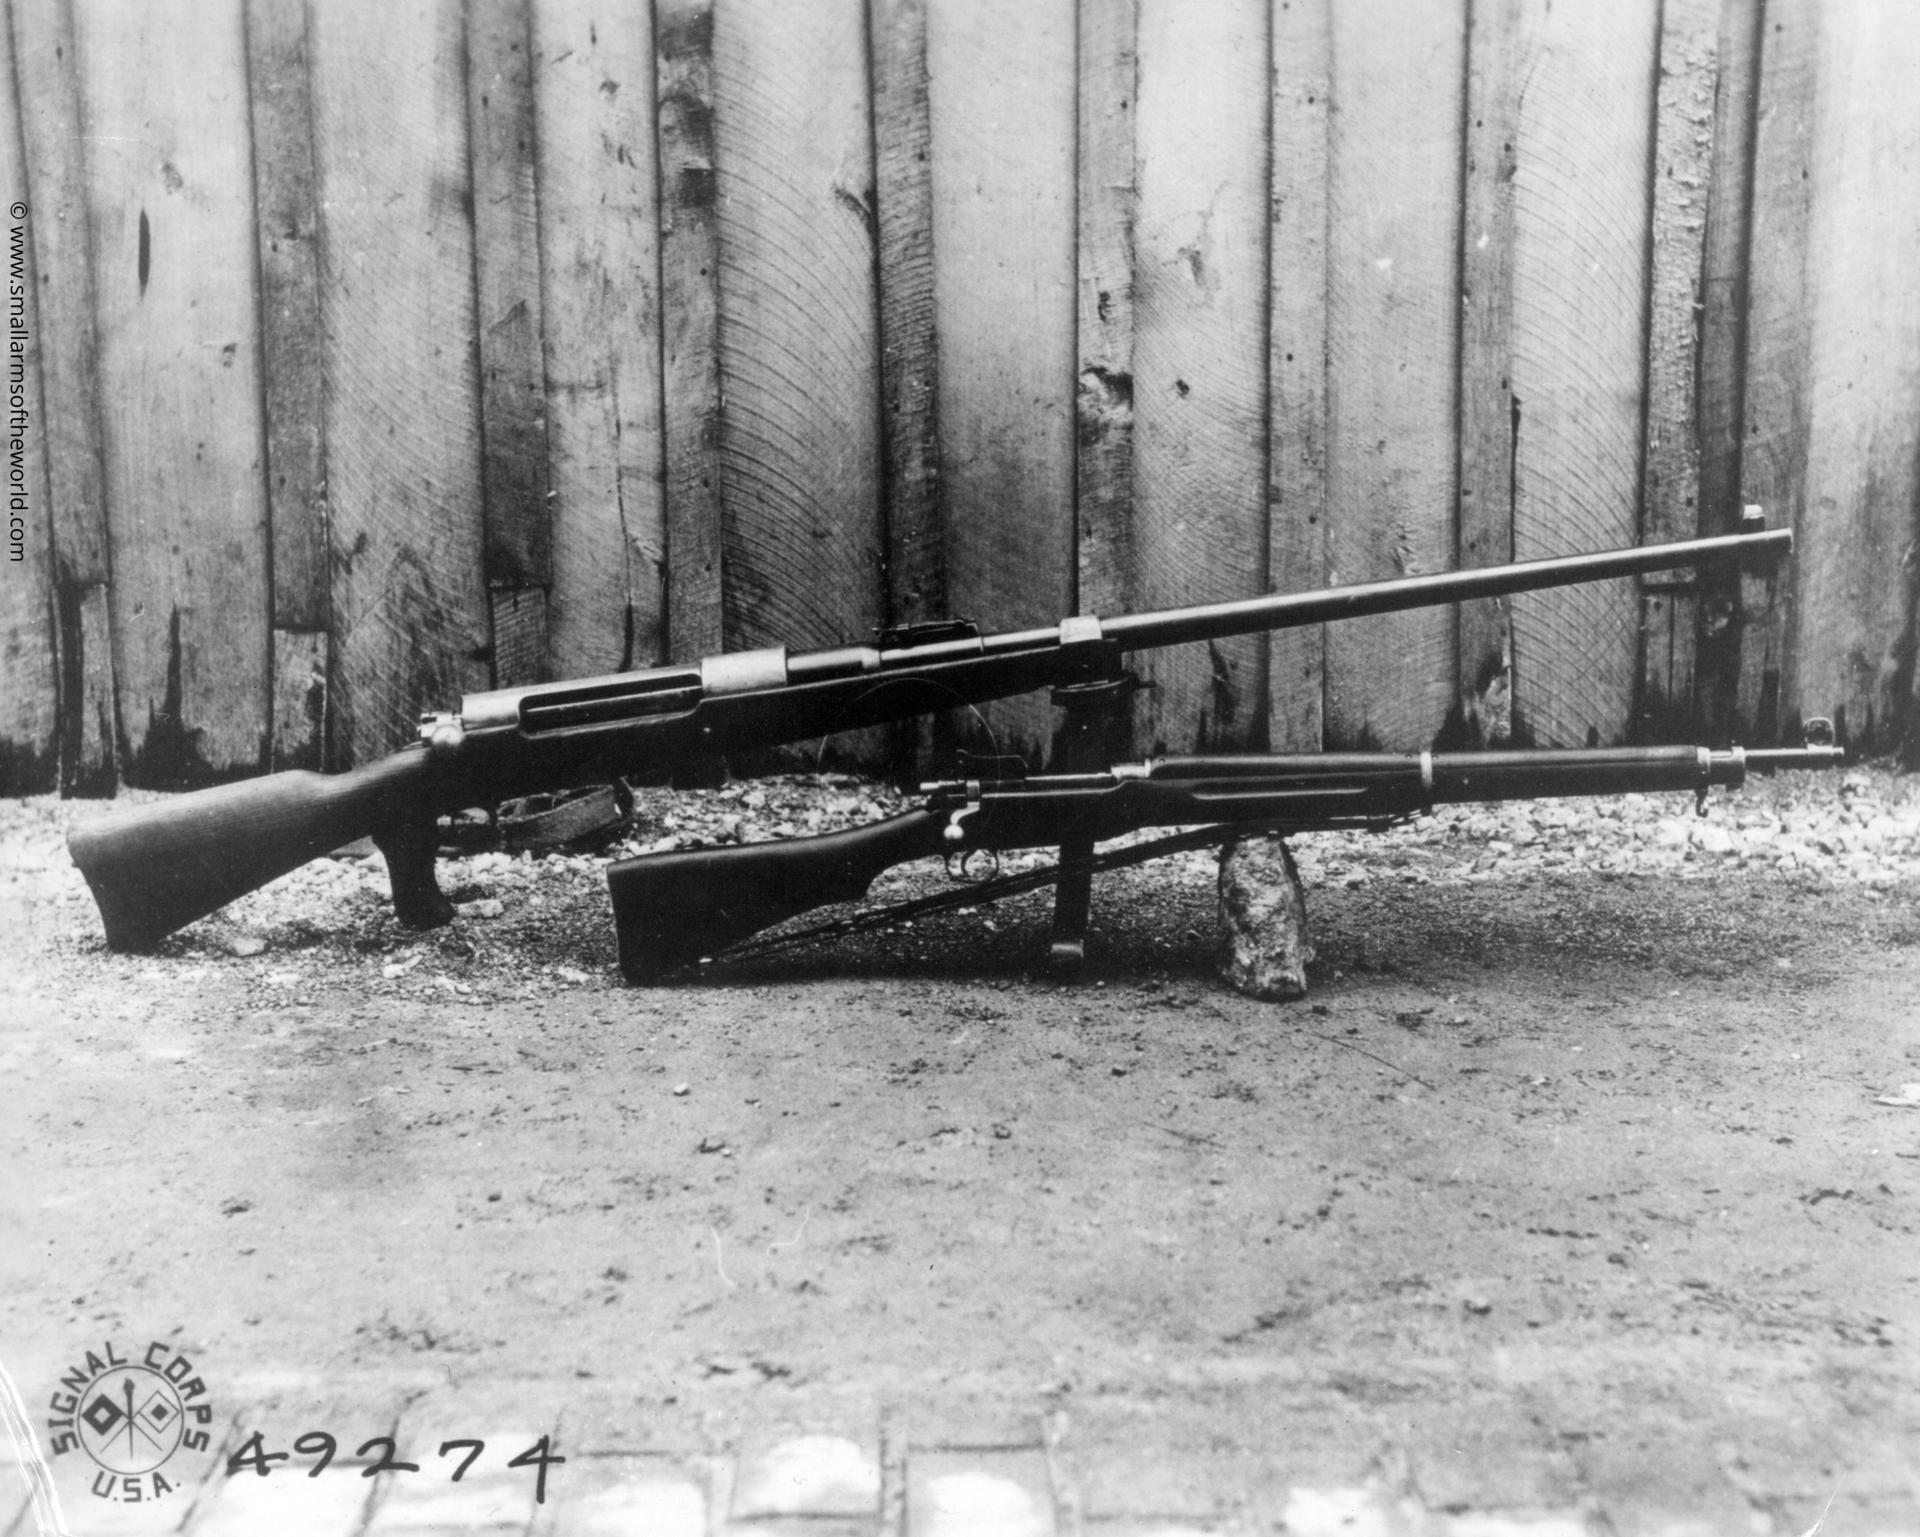 Model 1918 13.2 mm Mauser anti-tank bolt action rifle (top) compared with a US Model 1917 Enfield rifle (below). Signal Corps photo.